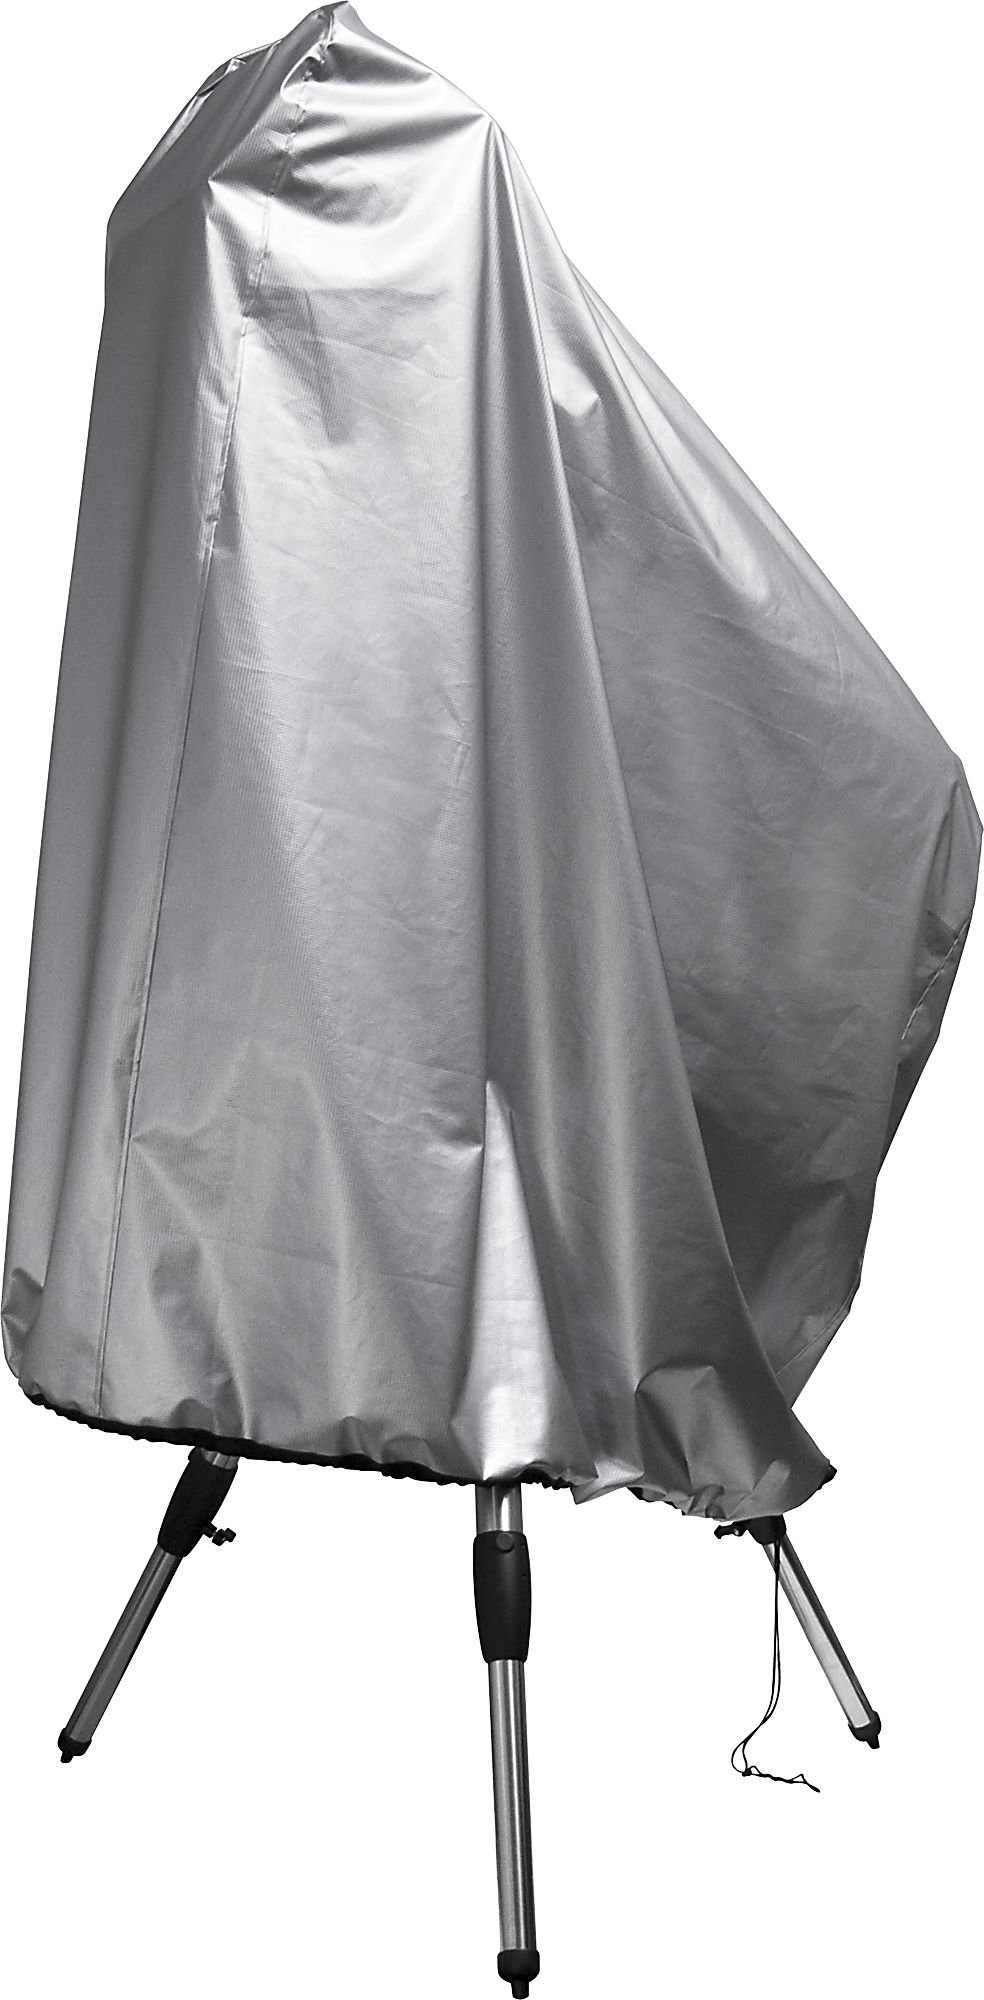 Orion 15206 Cloak Cover for Large Mounted Telescopes by Orion